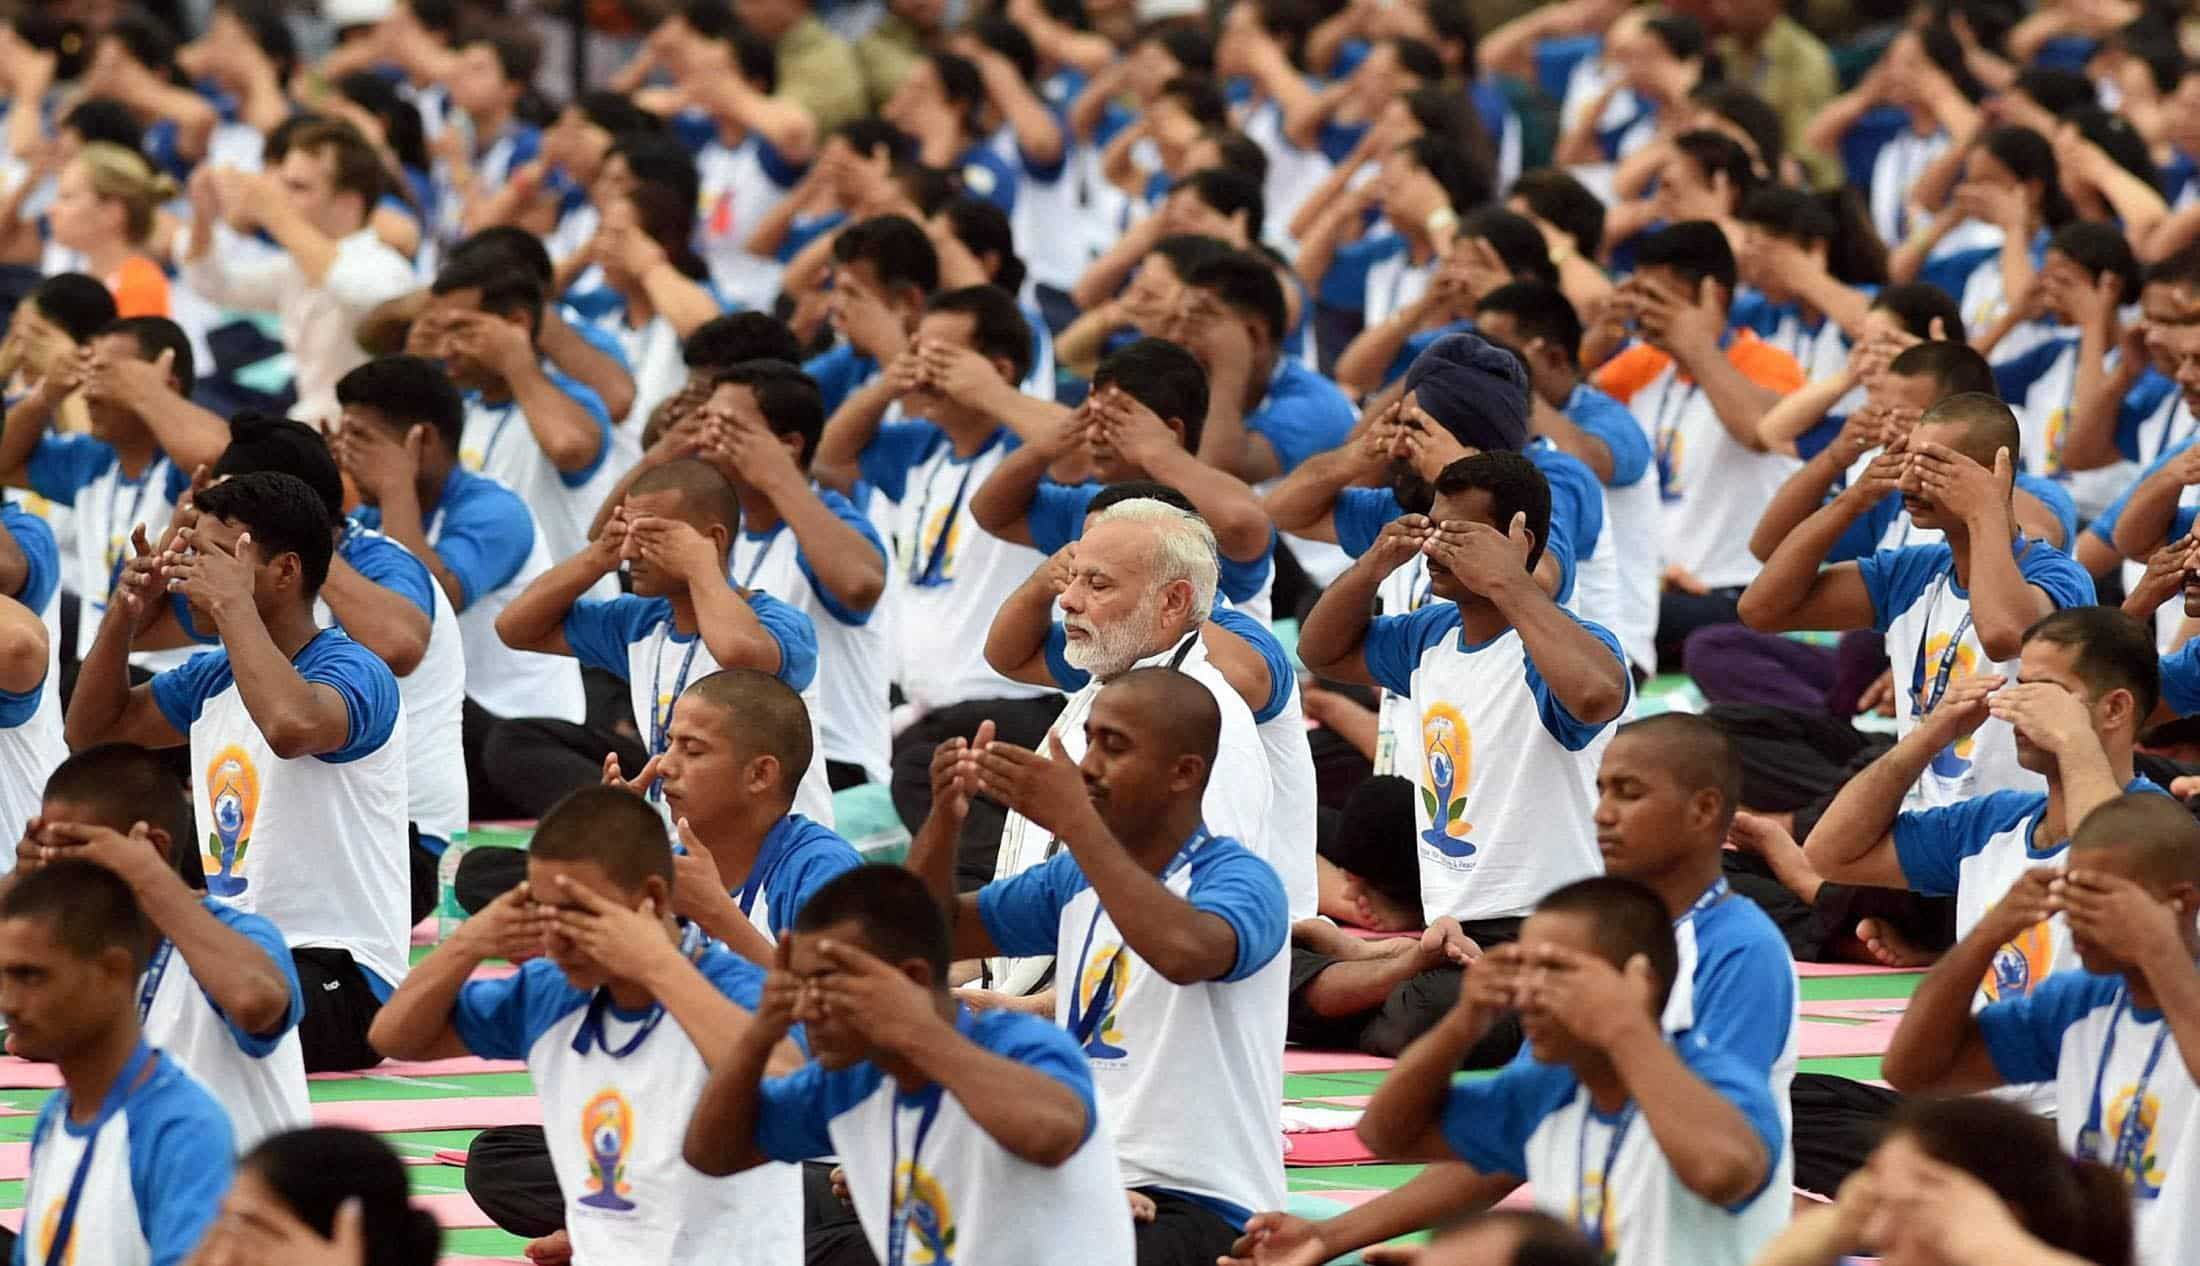 Once again PM Narendra Modi spotted amidst thousand yoga practitioners on second International Yoga Day event at Chandigarh. PTI